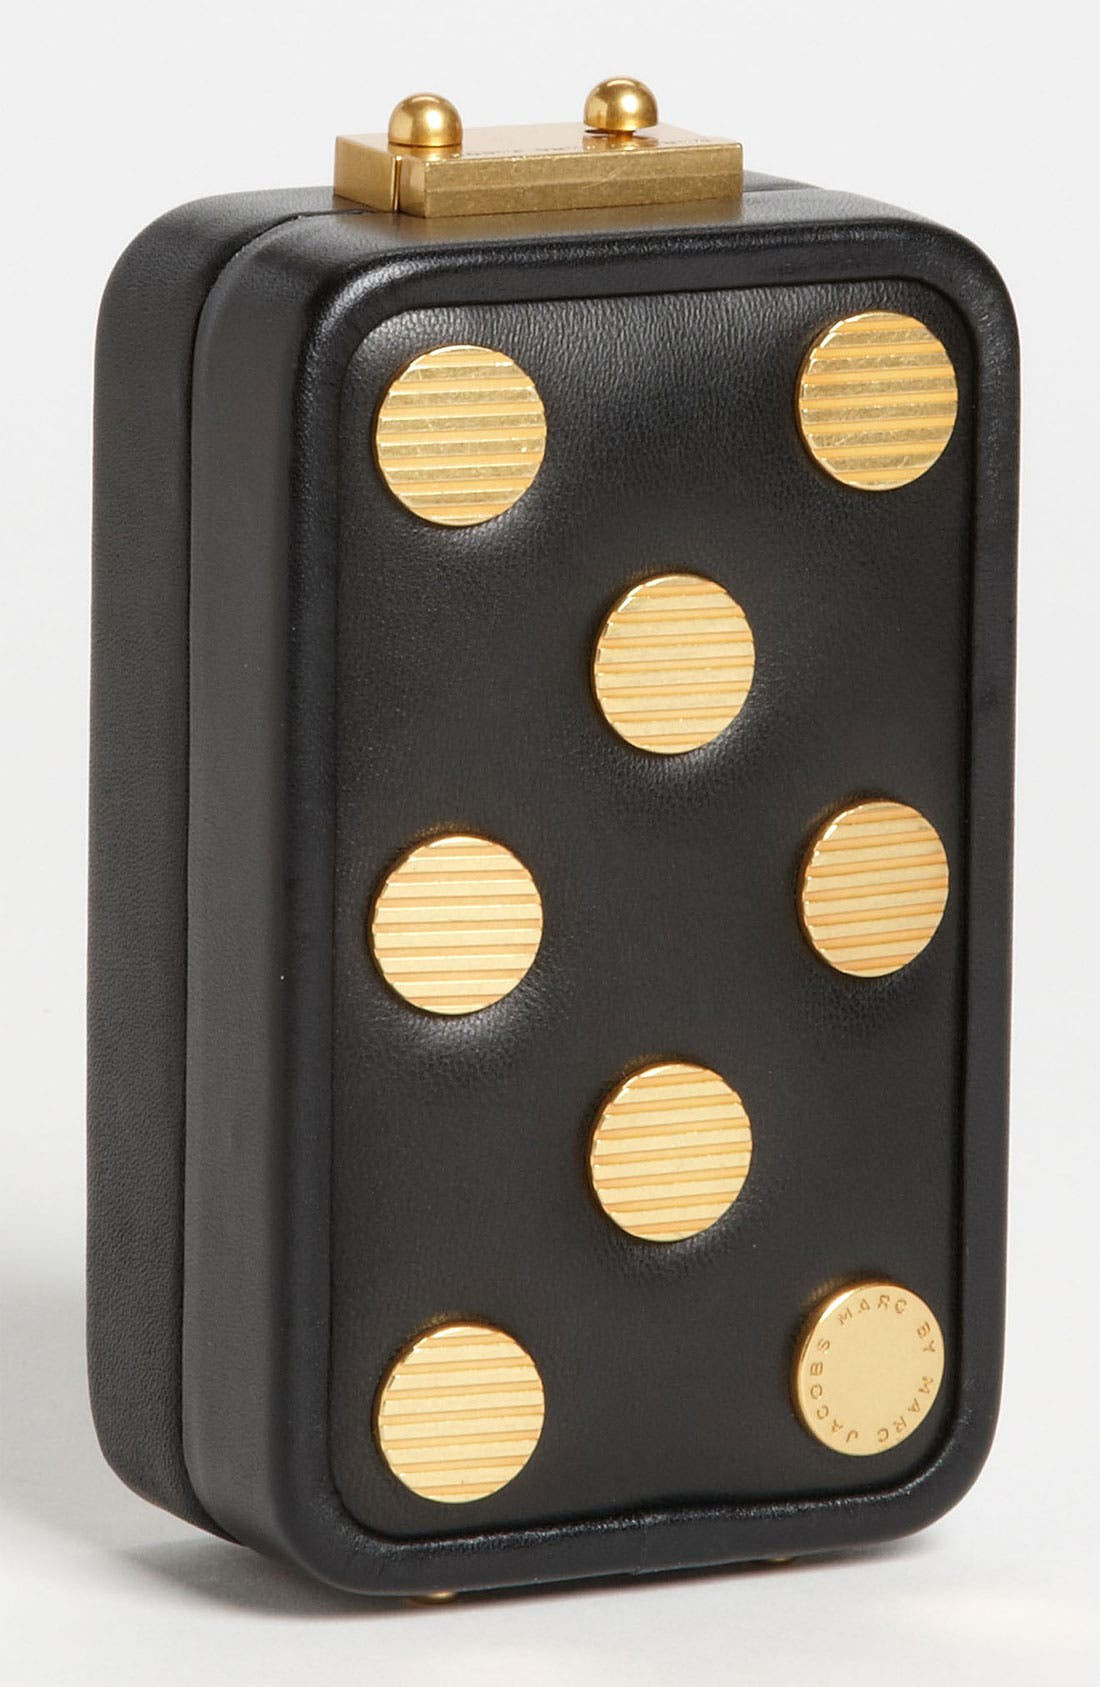 Alternate Image 1 Selected - MARC BY MARC JACOBS 'Phone in a Box - Dots' Phone Clutch